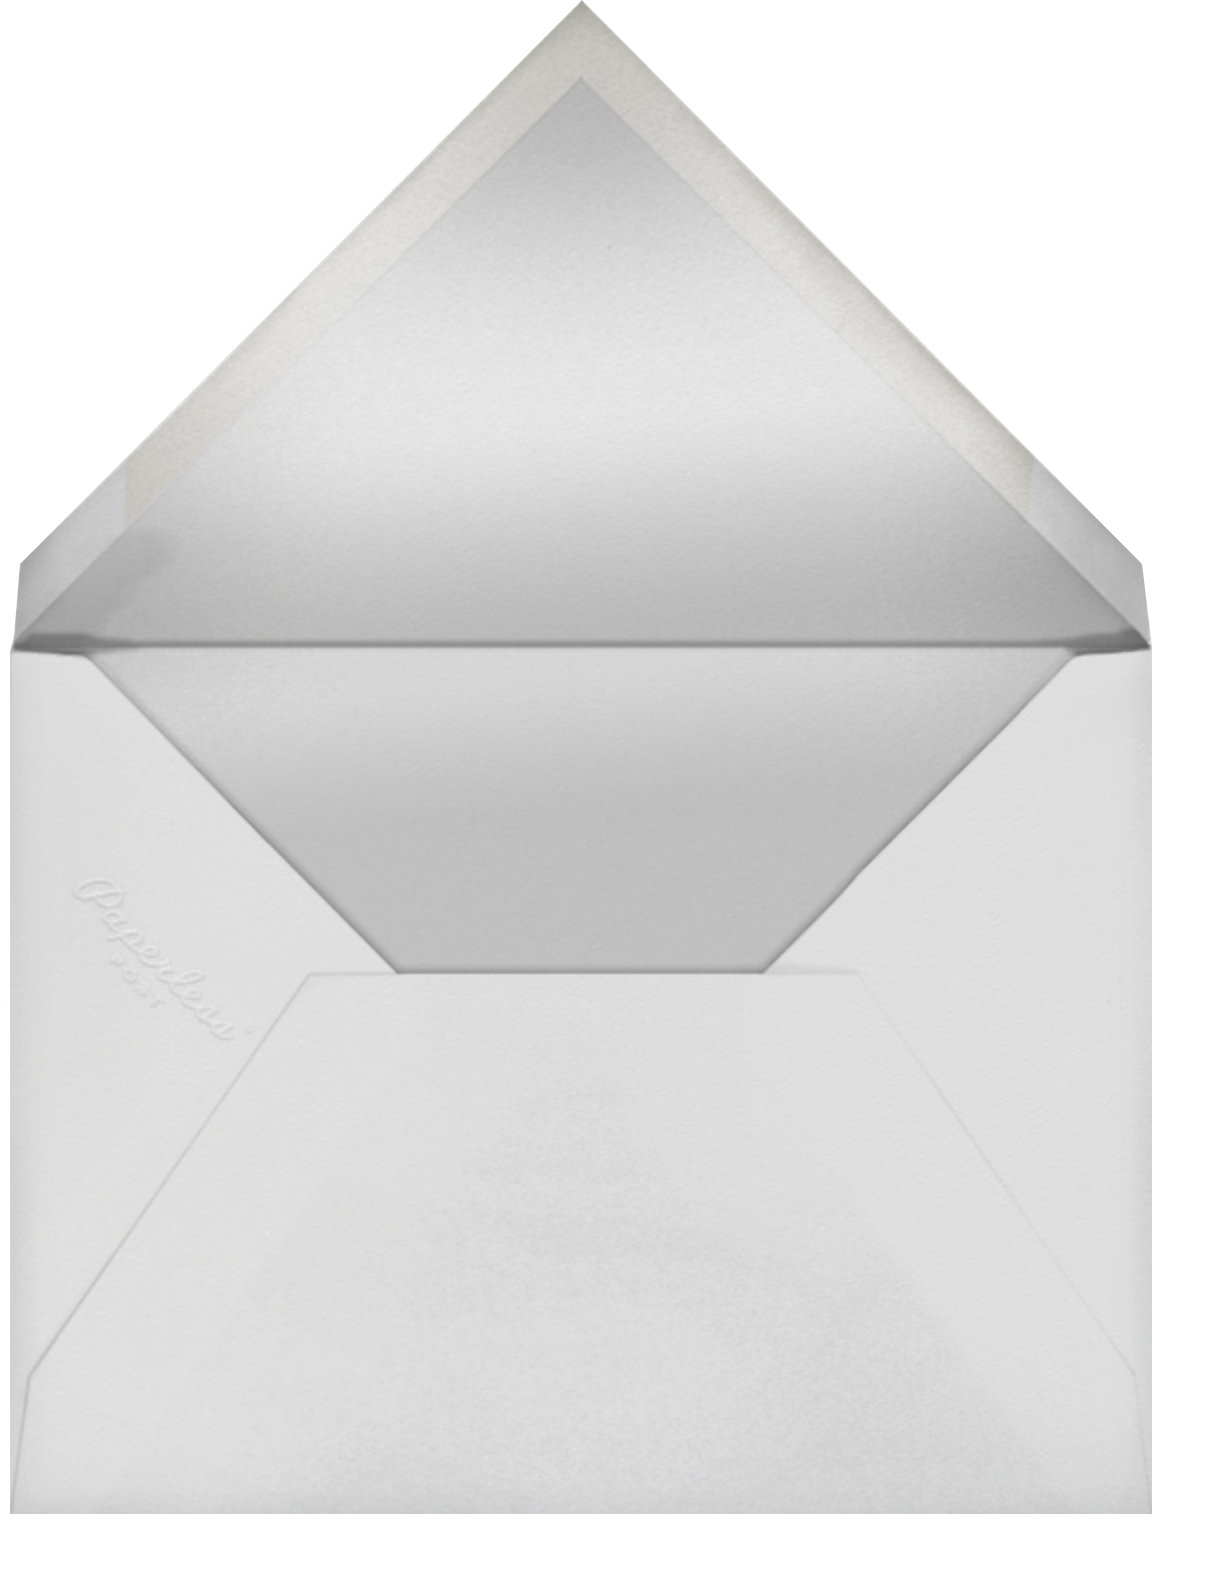 Editorial II (Menu) - White/Silver - Paperless Post - Menus - envelope back